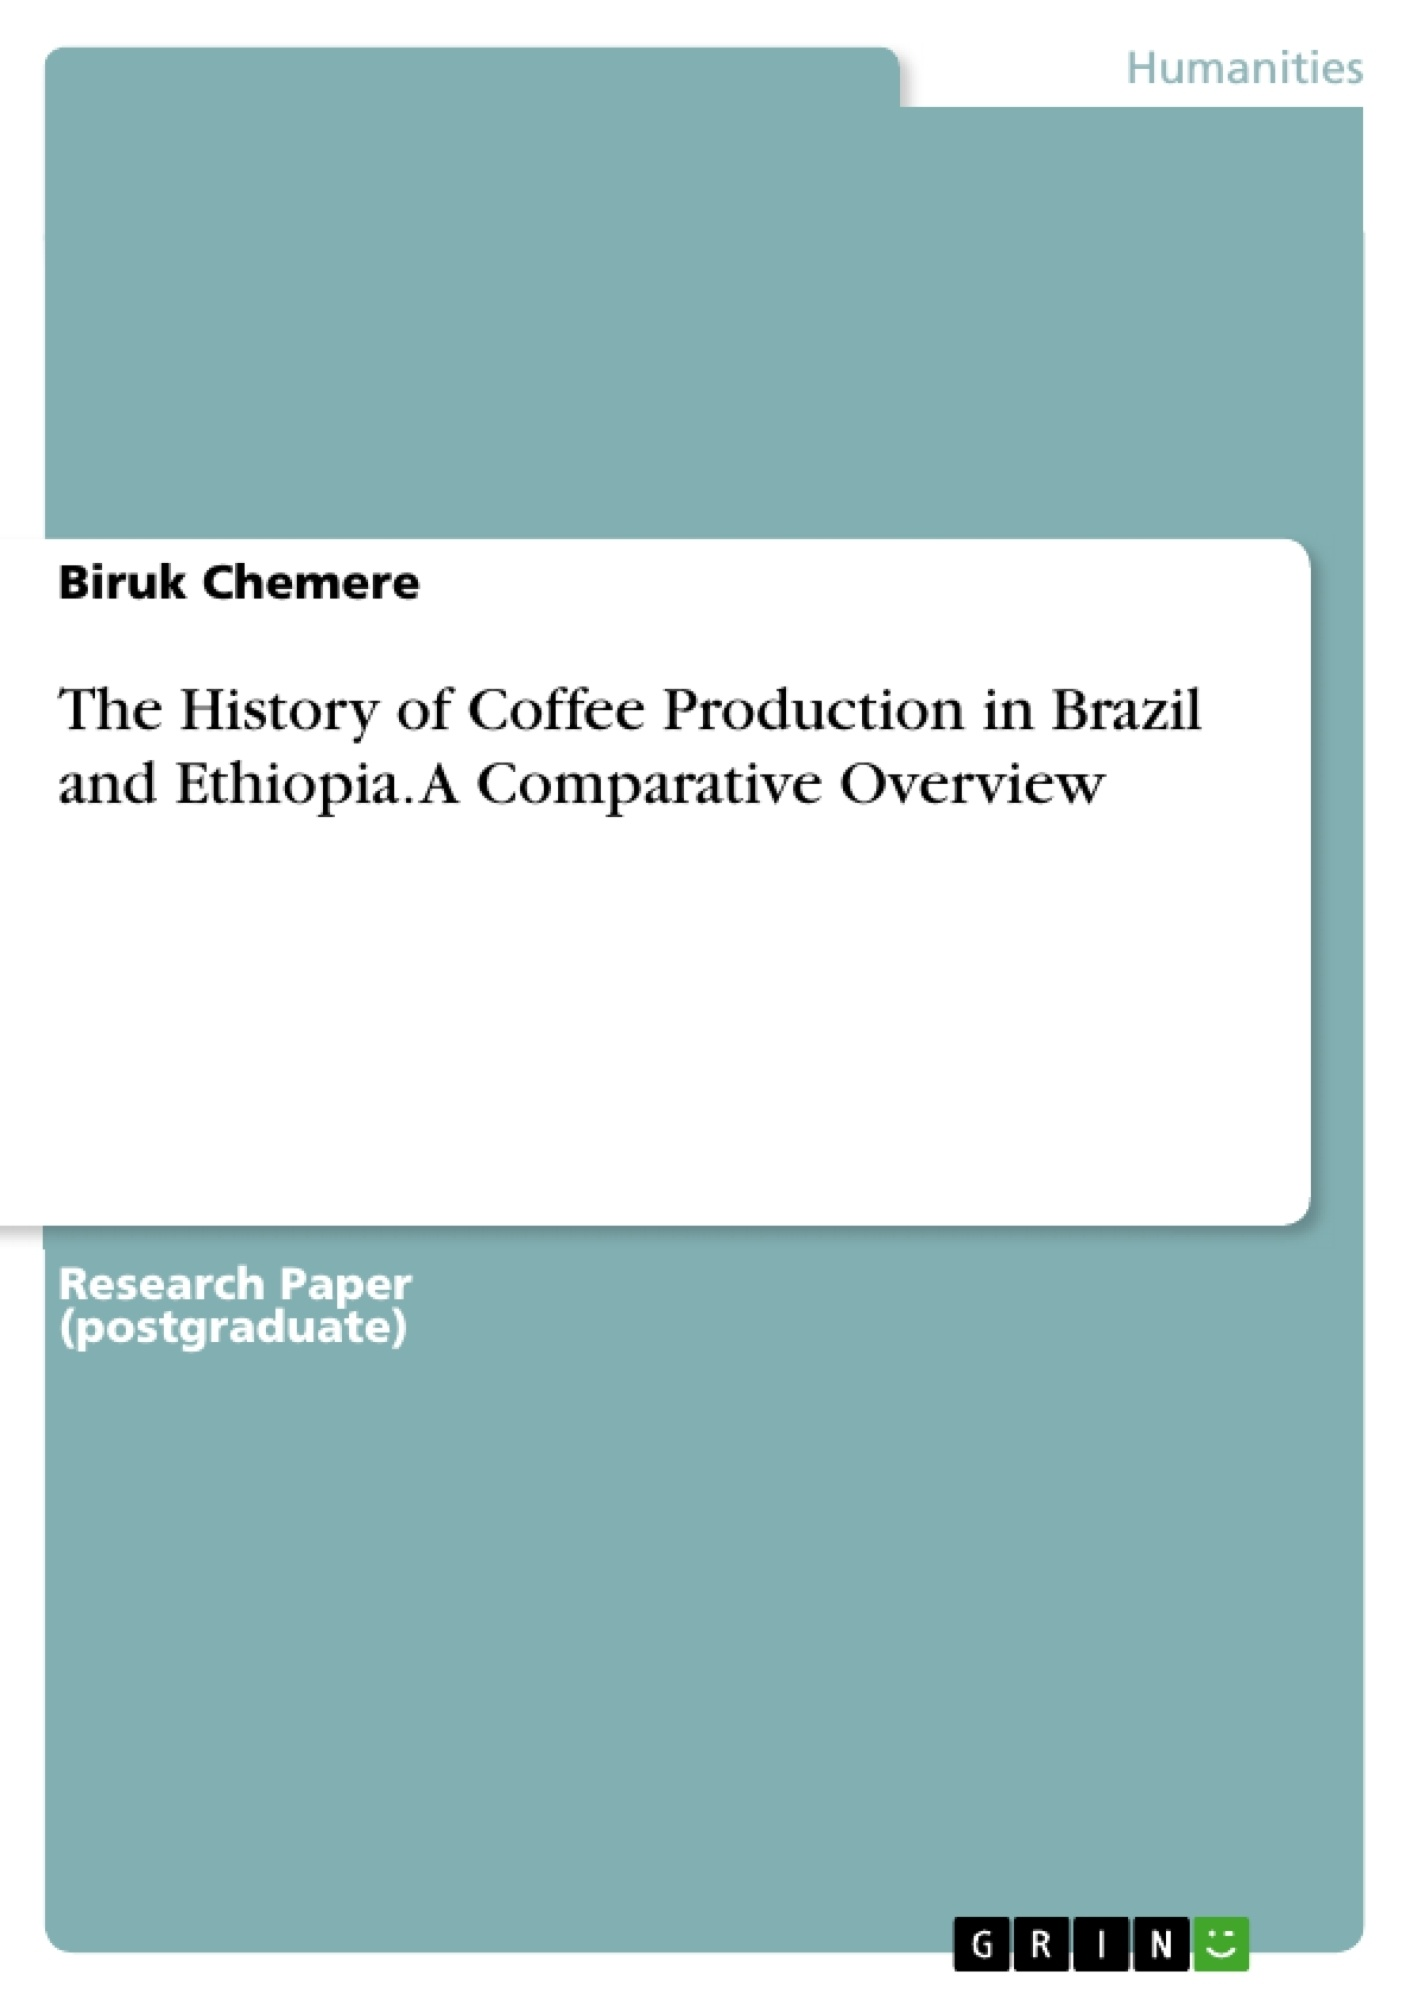 Title: The History of Coffee Production in Brazil and Ethiopia. A Comparative Overview